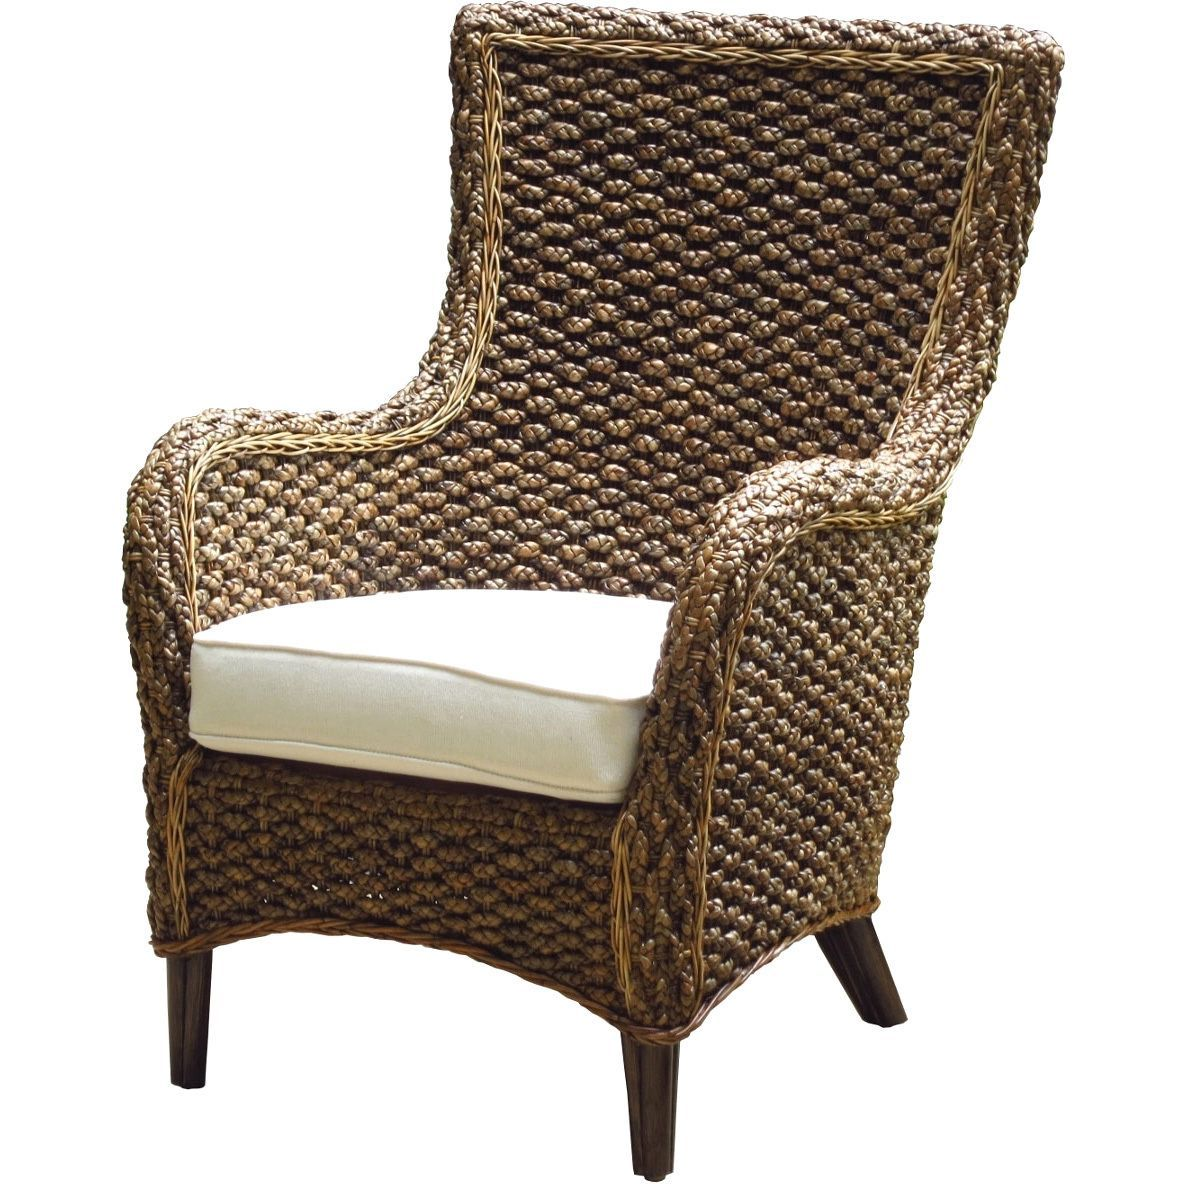 The Panama Jack Sanibel Sunroom Collection Offers Modular Components That Make Up Any Sized Section Wicker Patio Chairs Wicker Lounge Chair Patio Lounge Chairs - Garden Furniture Clearance Southampton